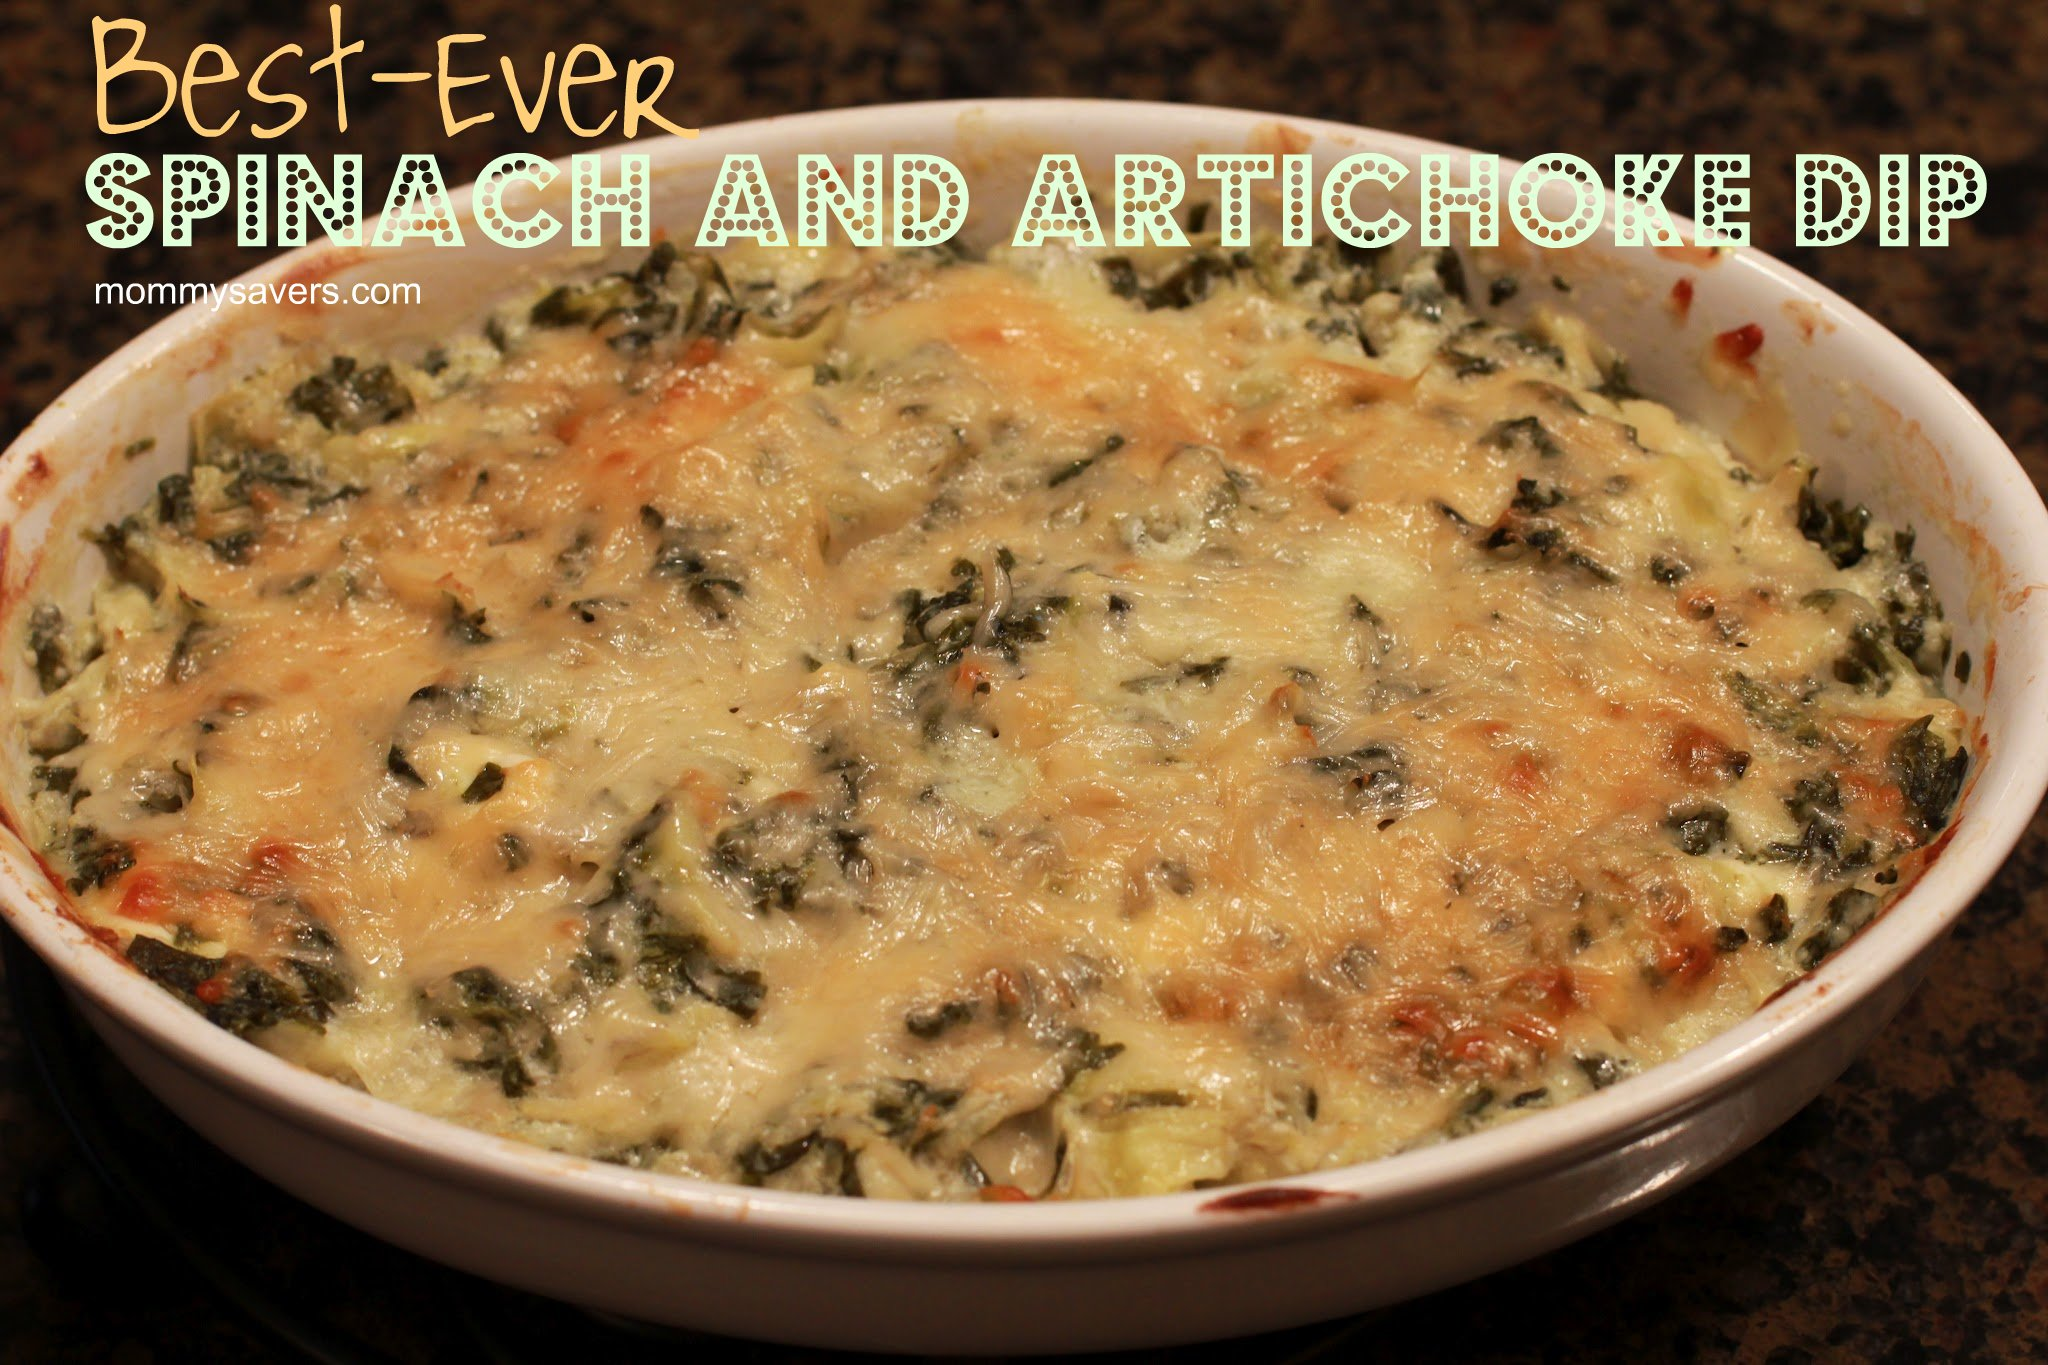 Best-Ever Spinach and Artichoke Dip | Mommysavers